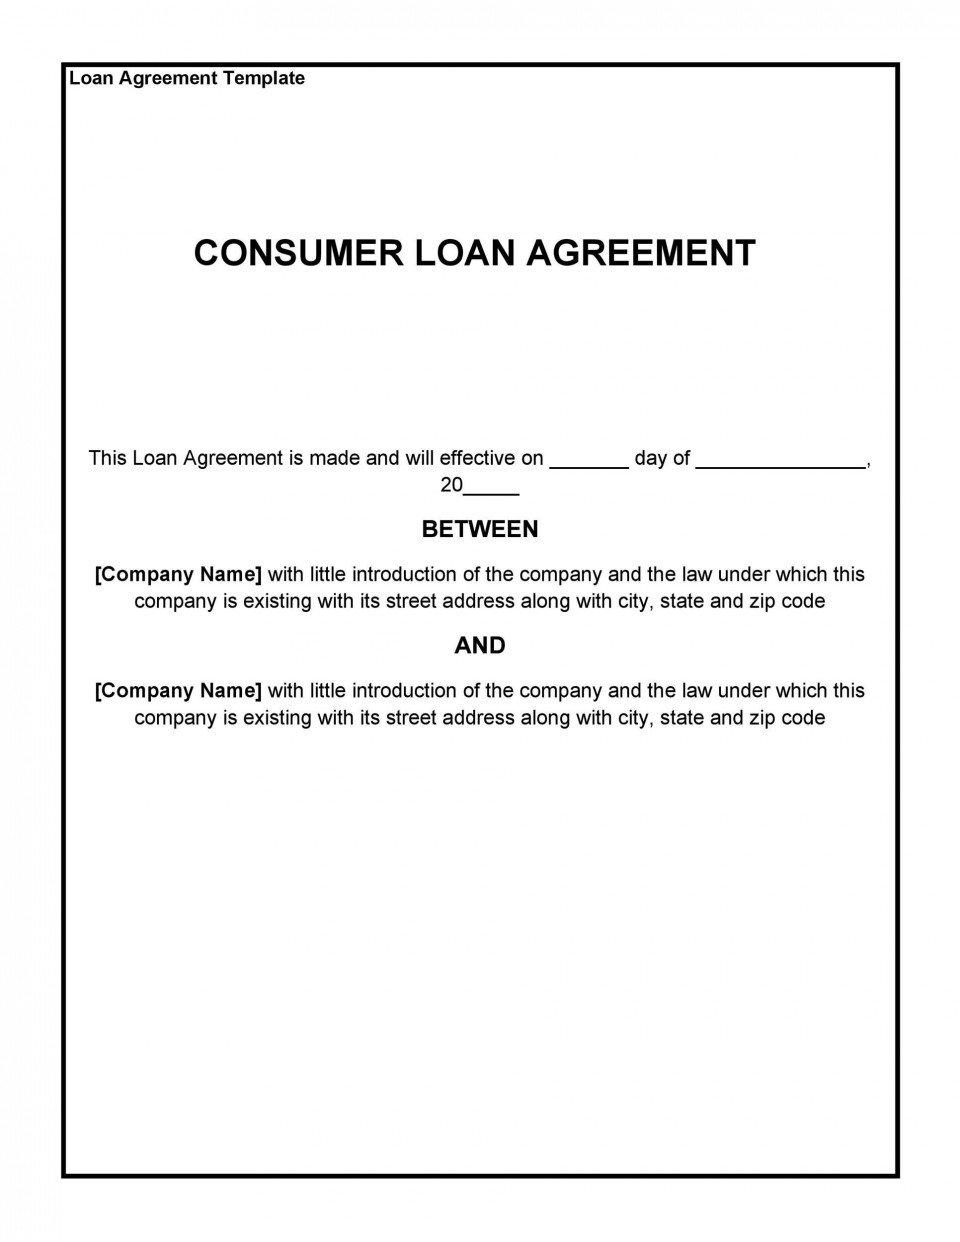 008 Singular Family Loan Agreement Template Highest Clarity  Nz Uk Free960